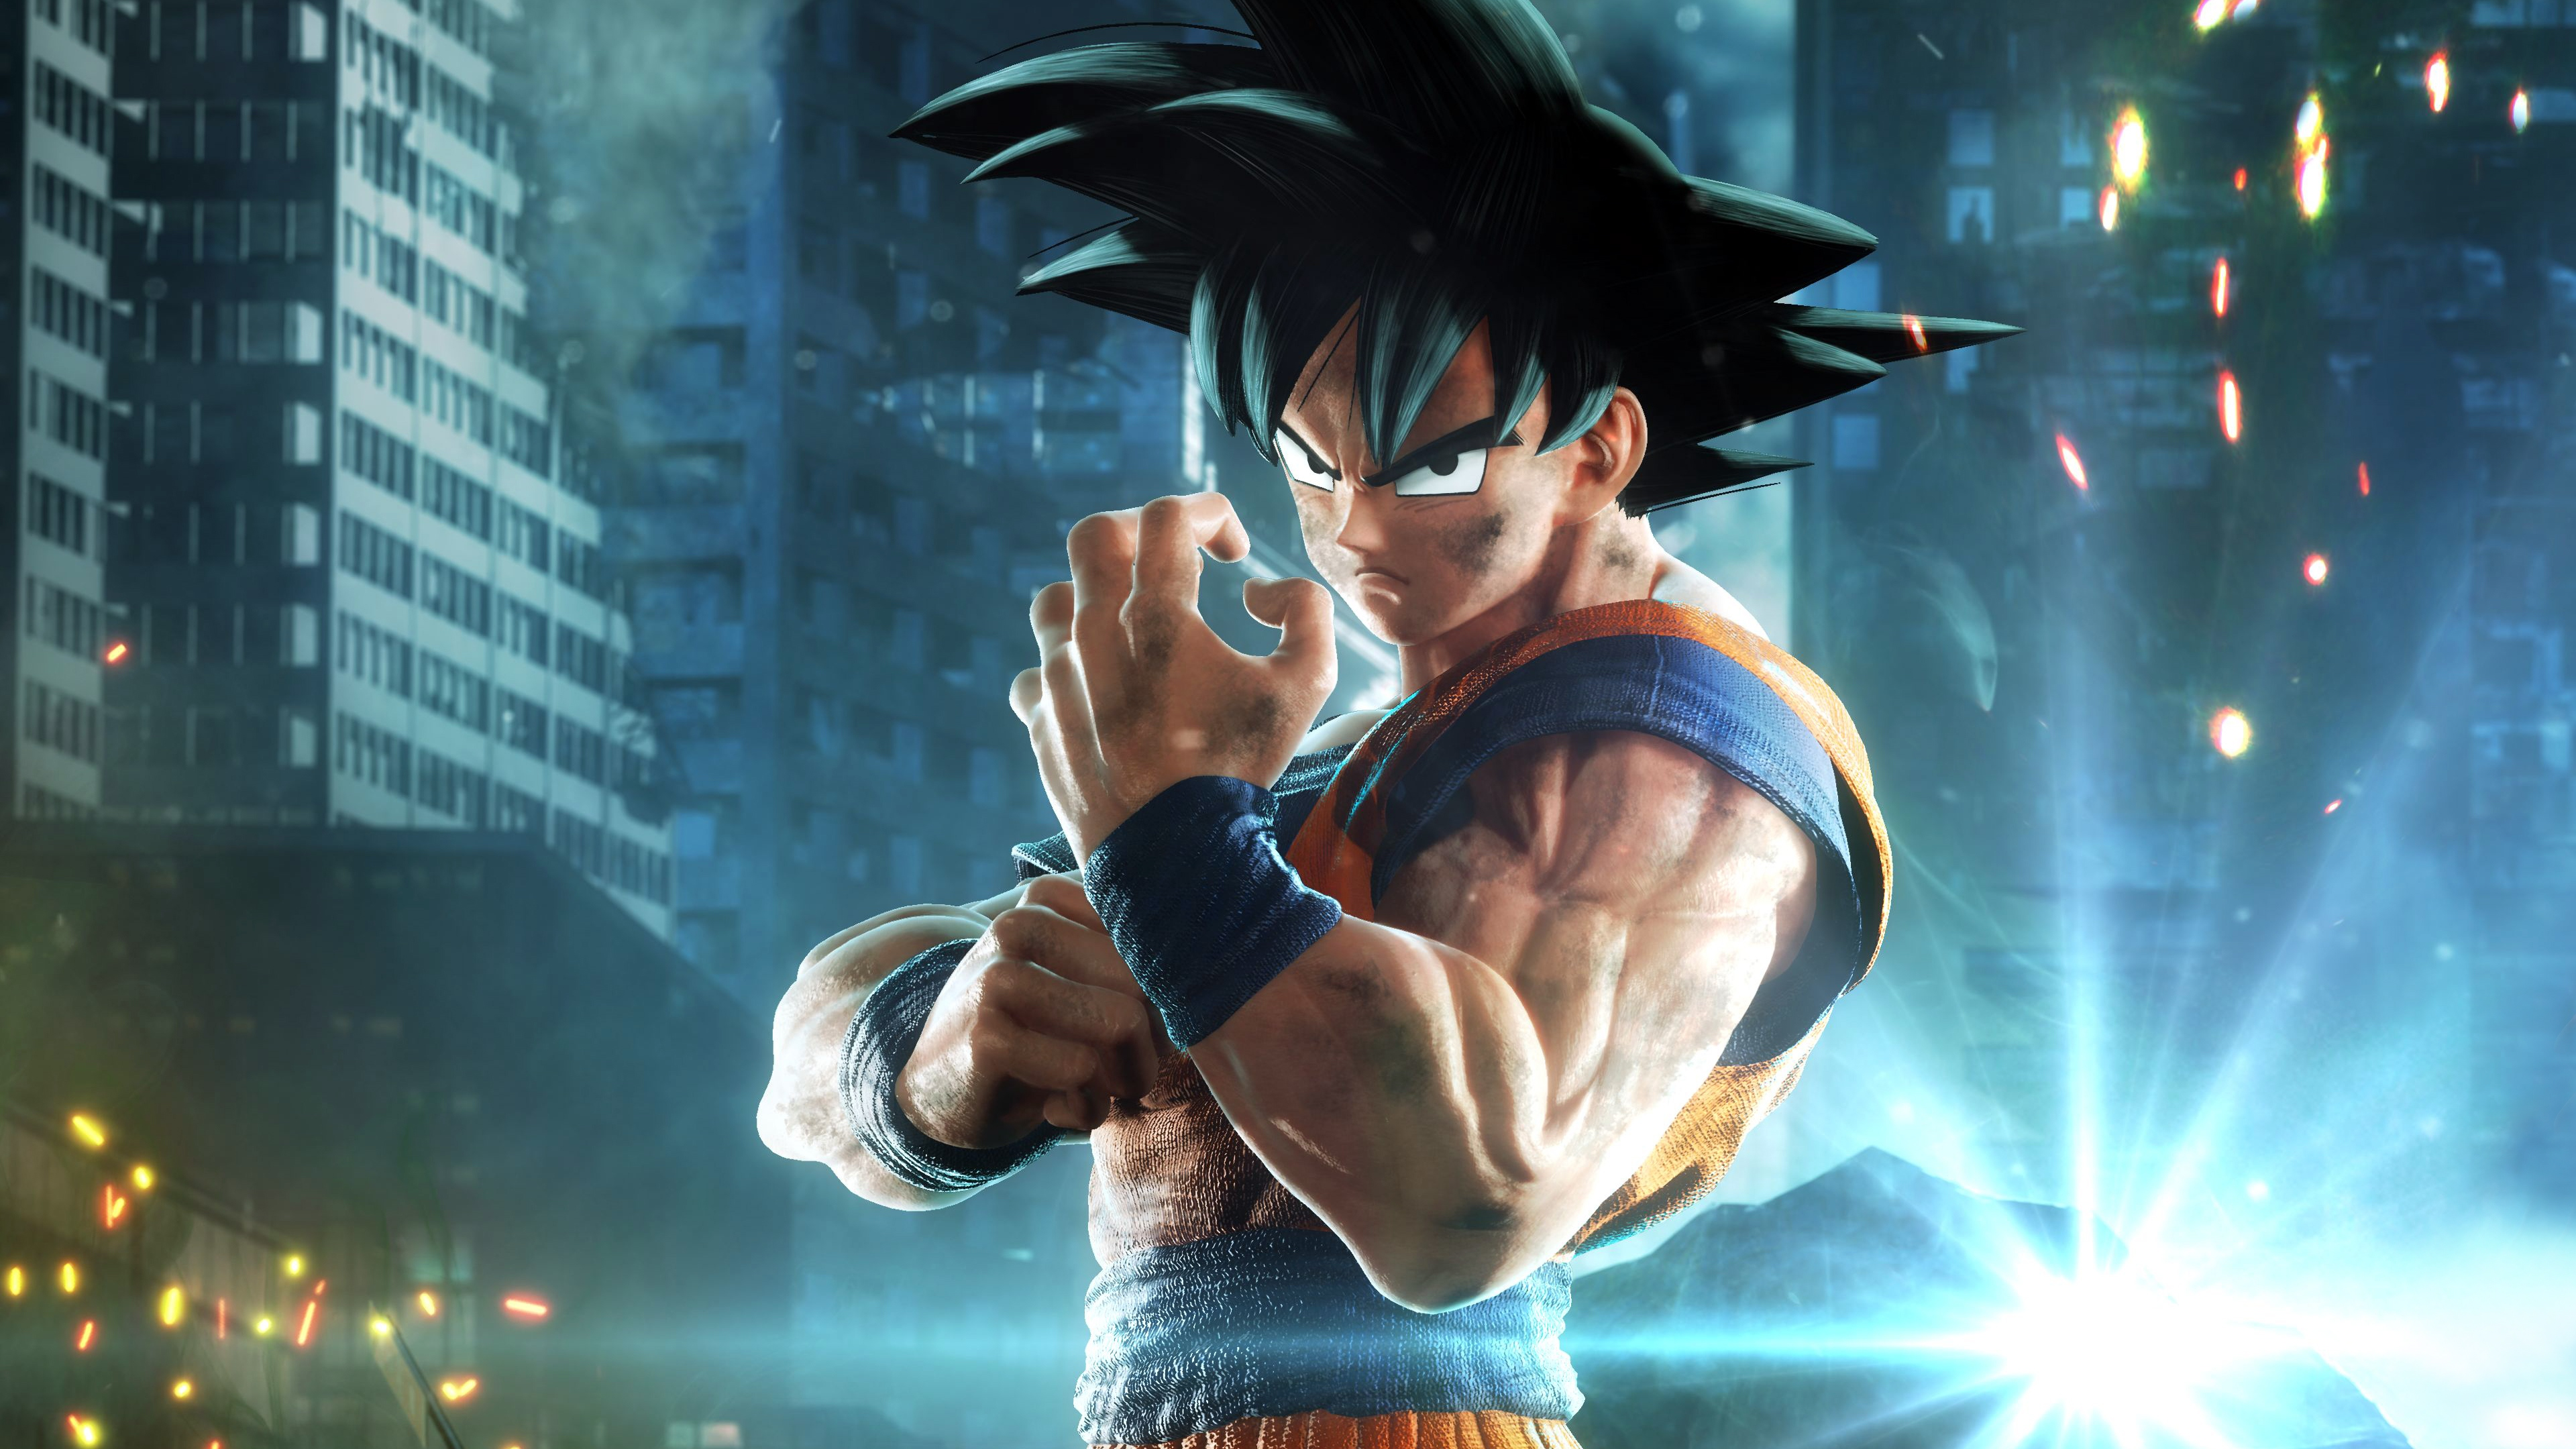 Jump Force Goku 4k Hd Games 4k Wallpapers Images